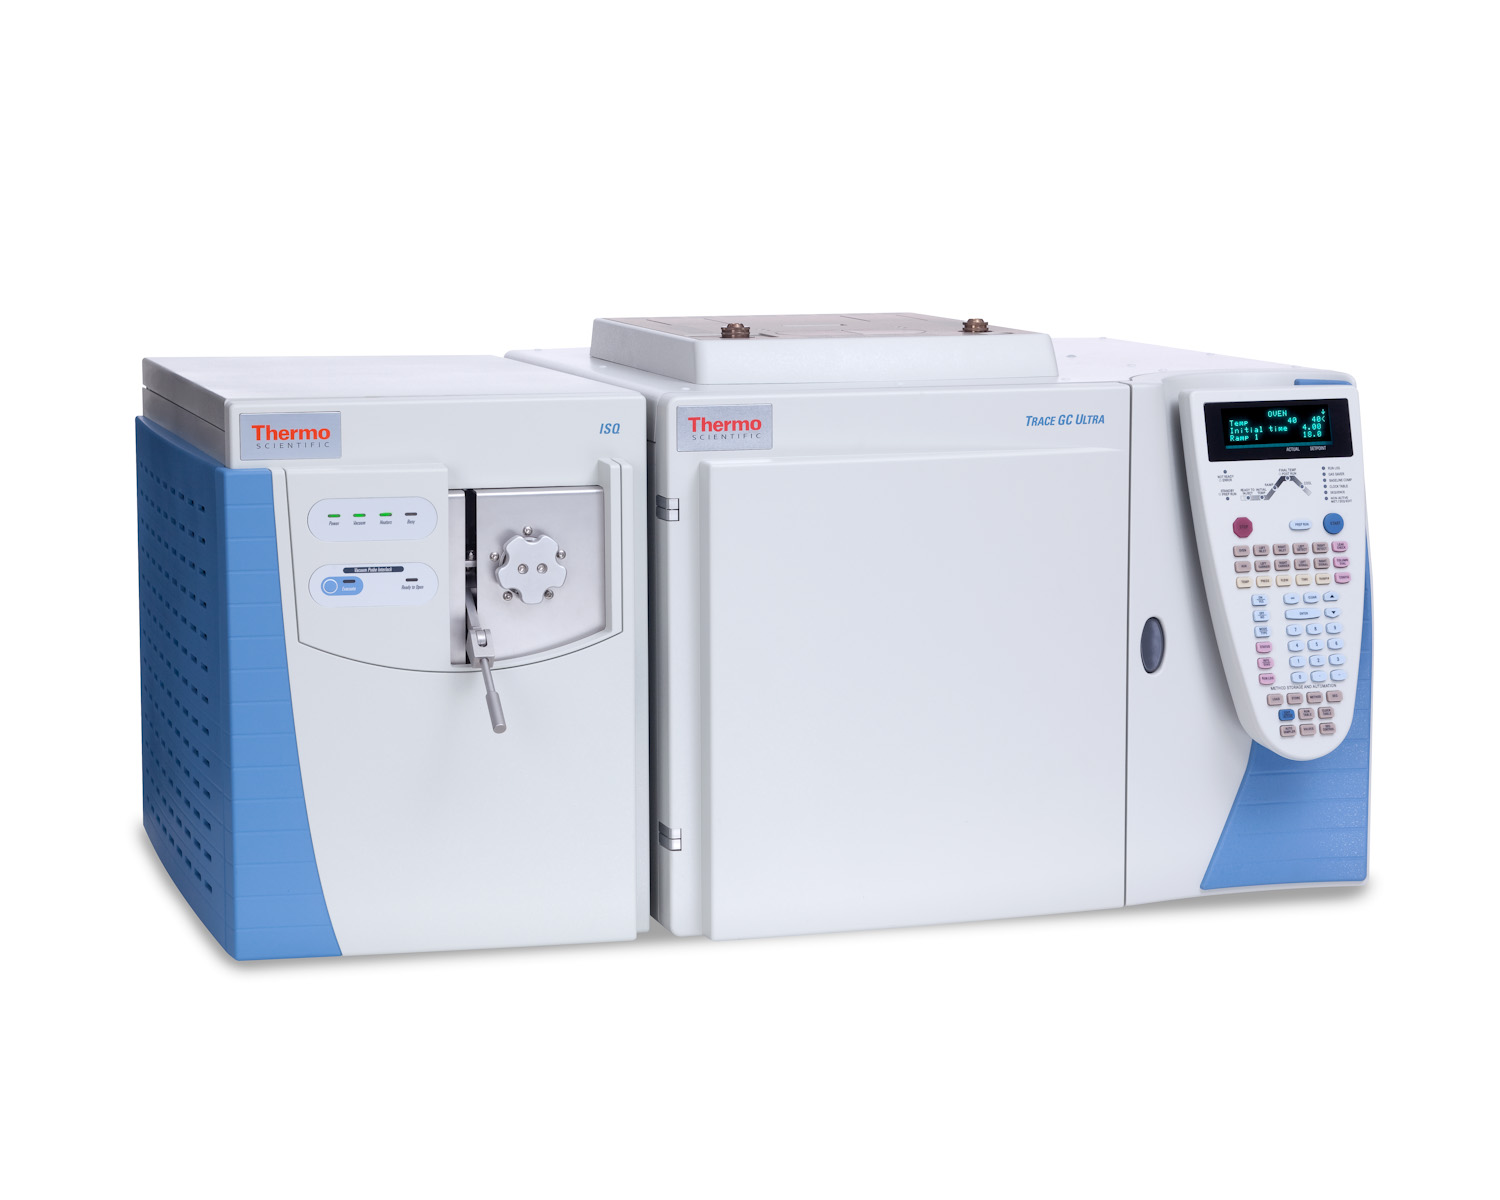 Thermo Fisher Scientific Launches New Single Quadrupole GC-MS with Removable Ion Source at Analytica